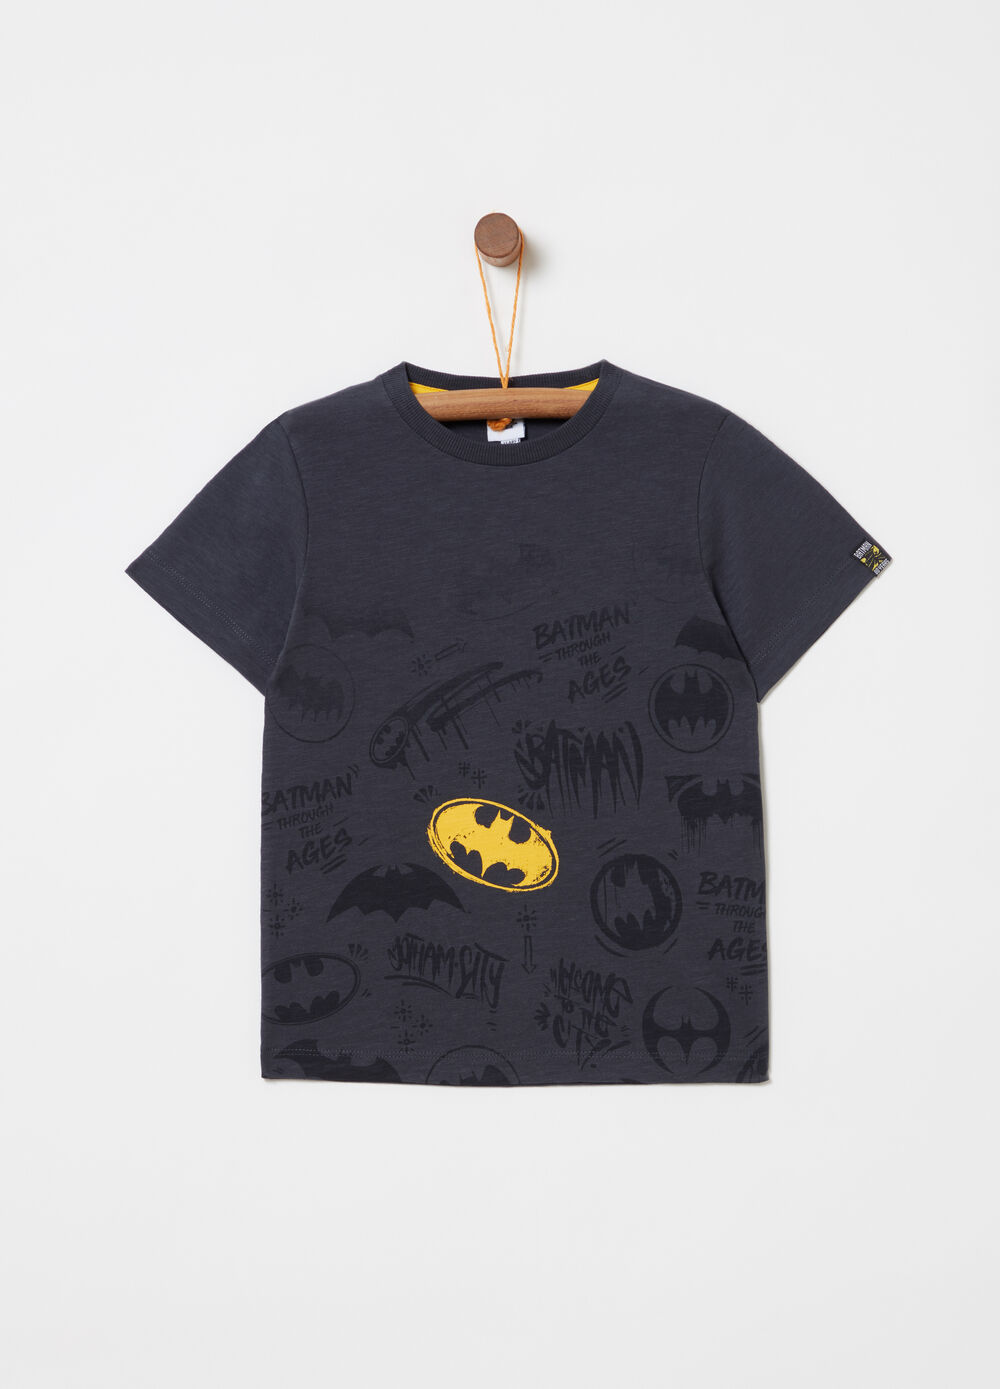 T-shirt with Batman print on the front